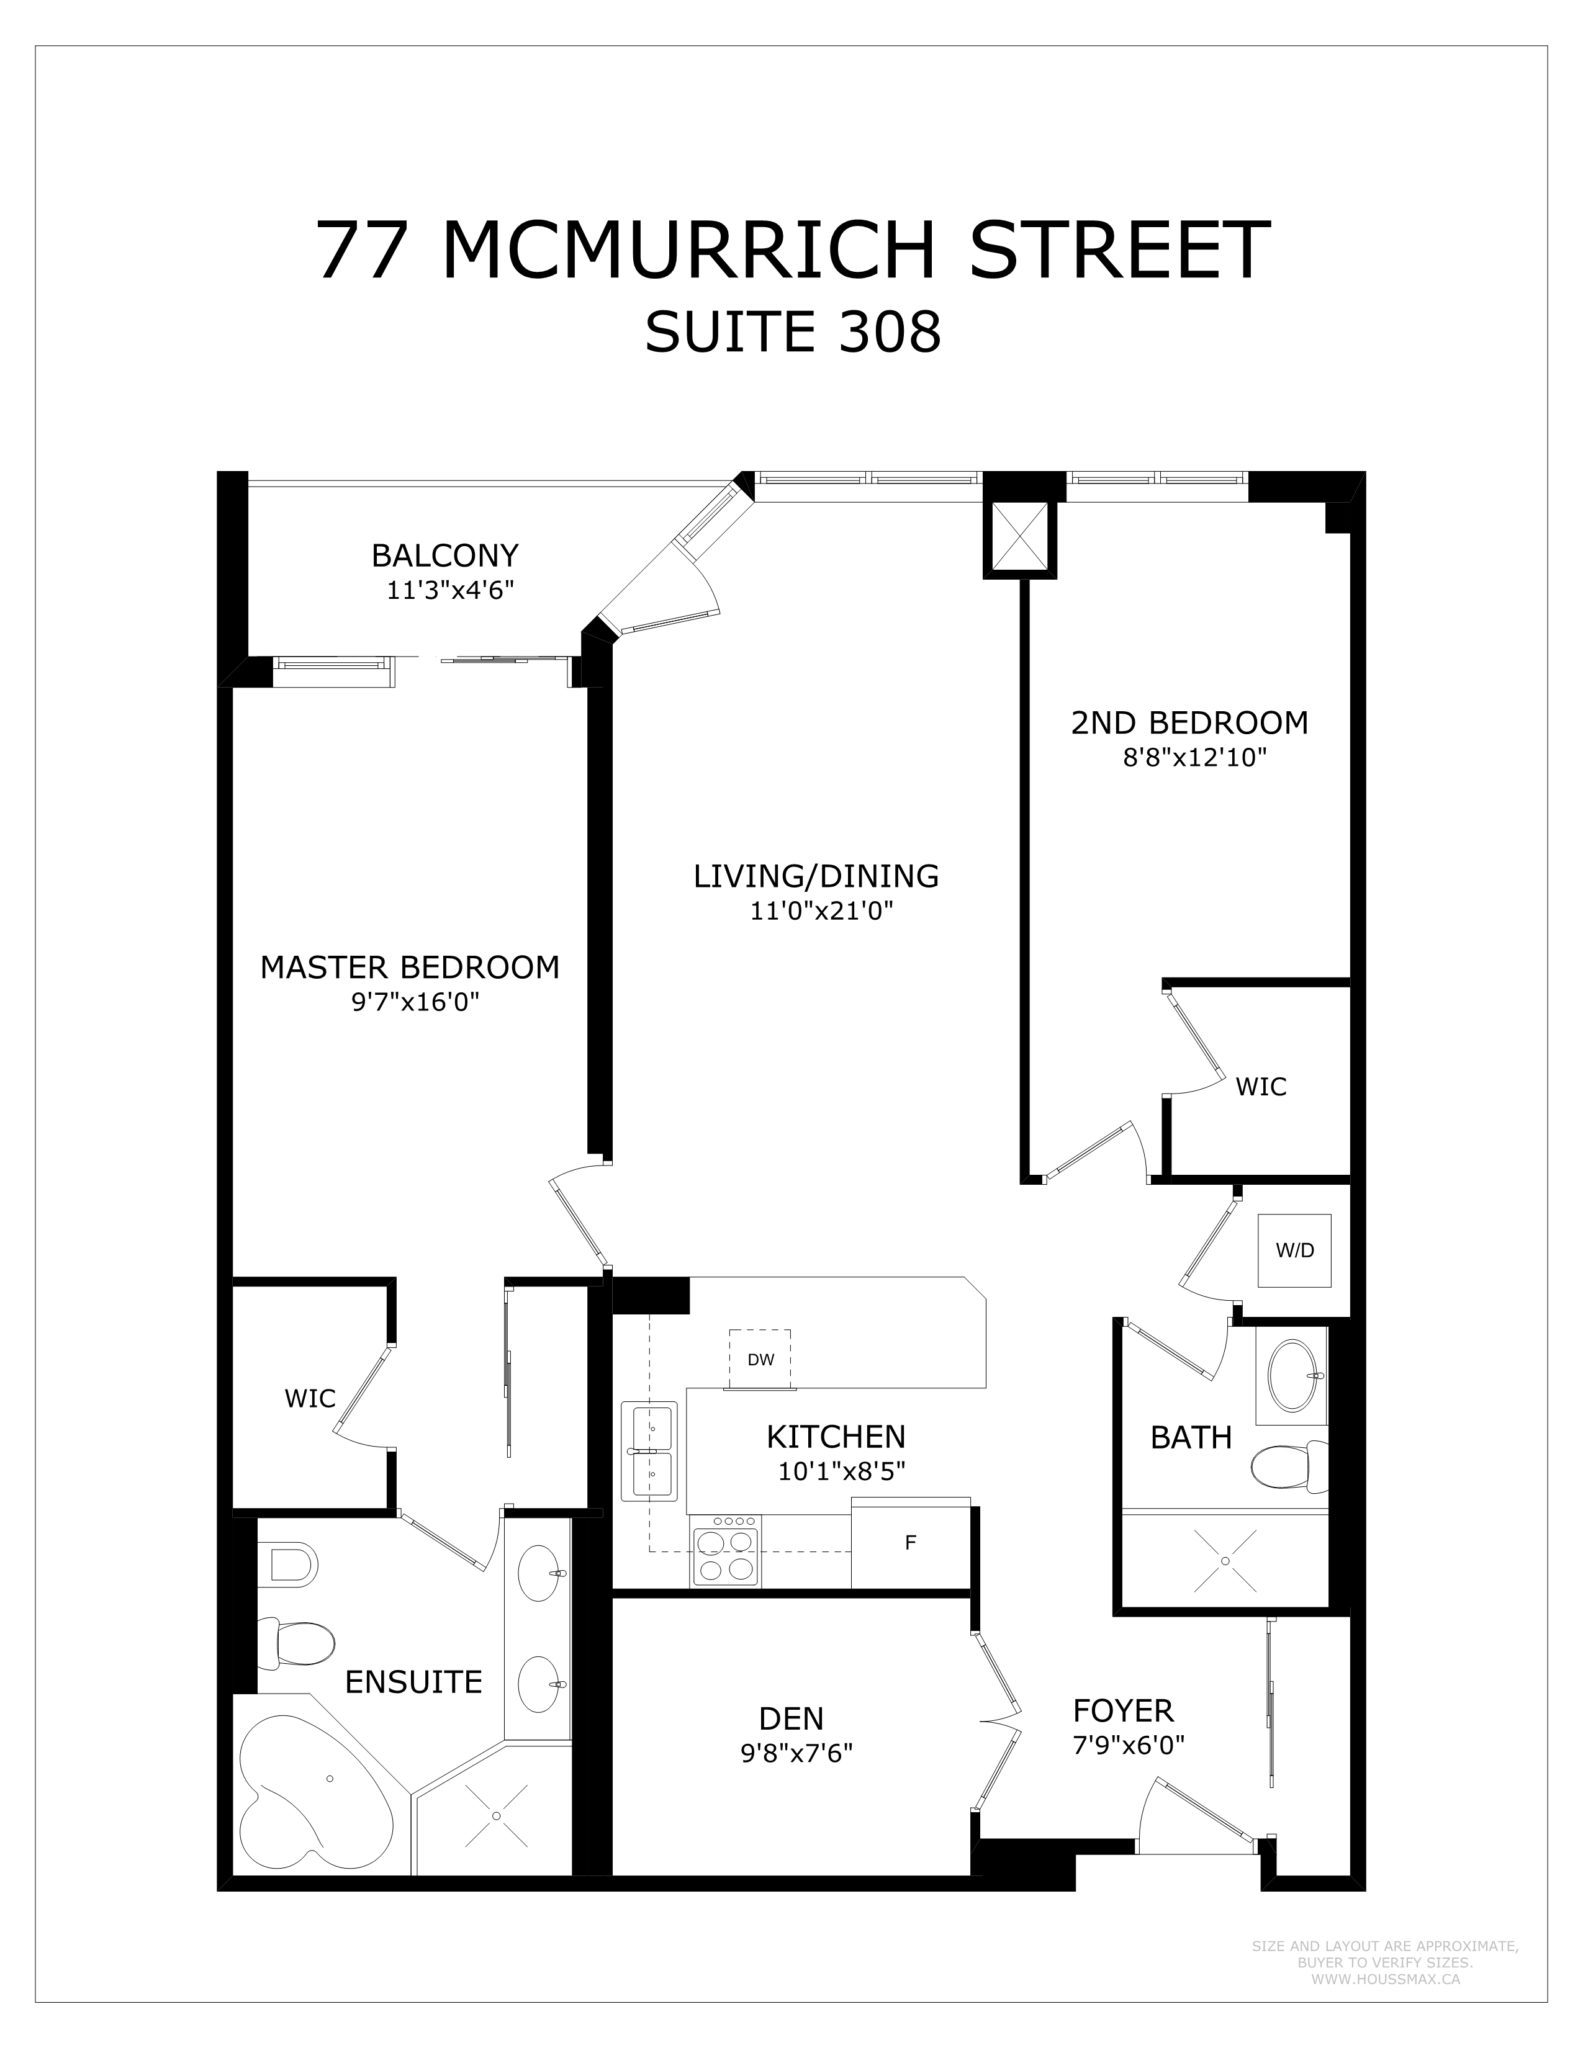 Condo floor plans for 77 McMurrich St Unit 308 in Yorkville.